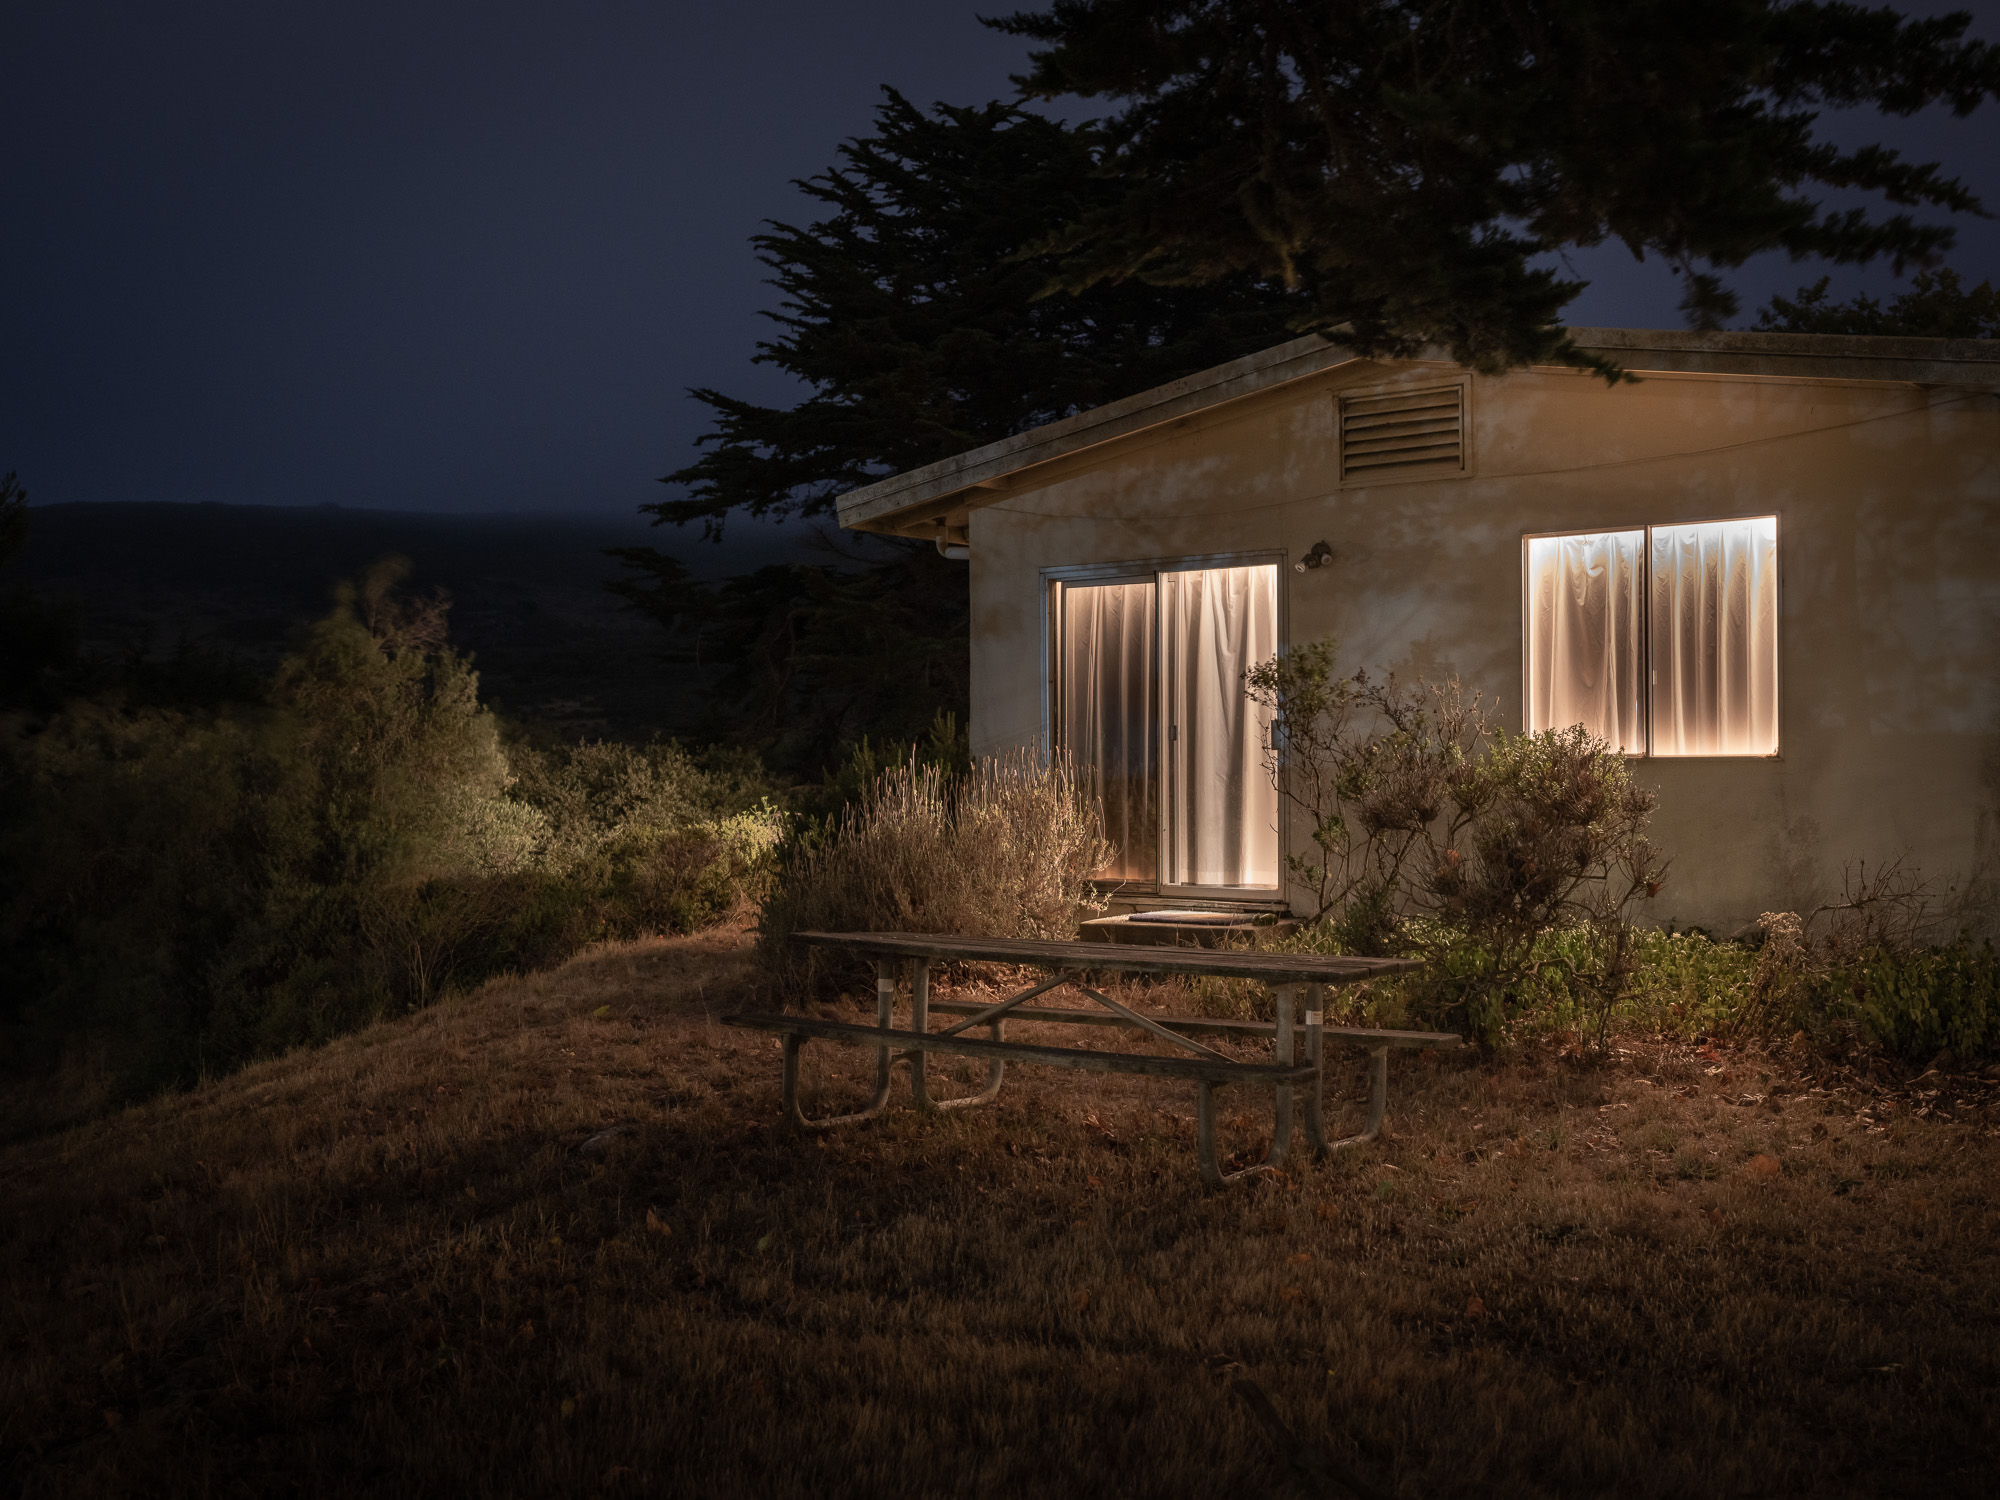 Image of house with curtains at night and table.